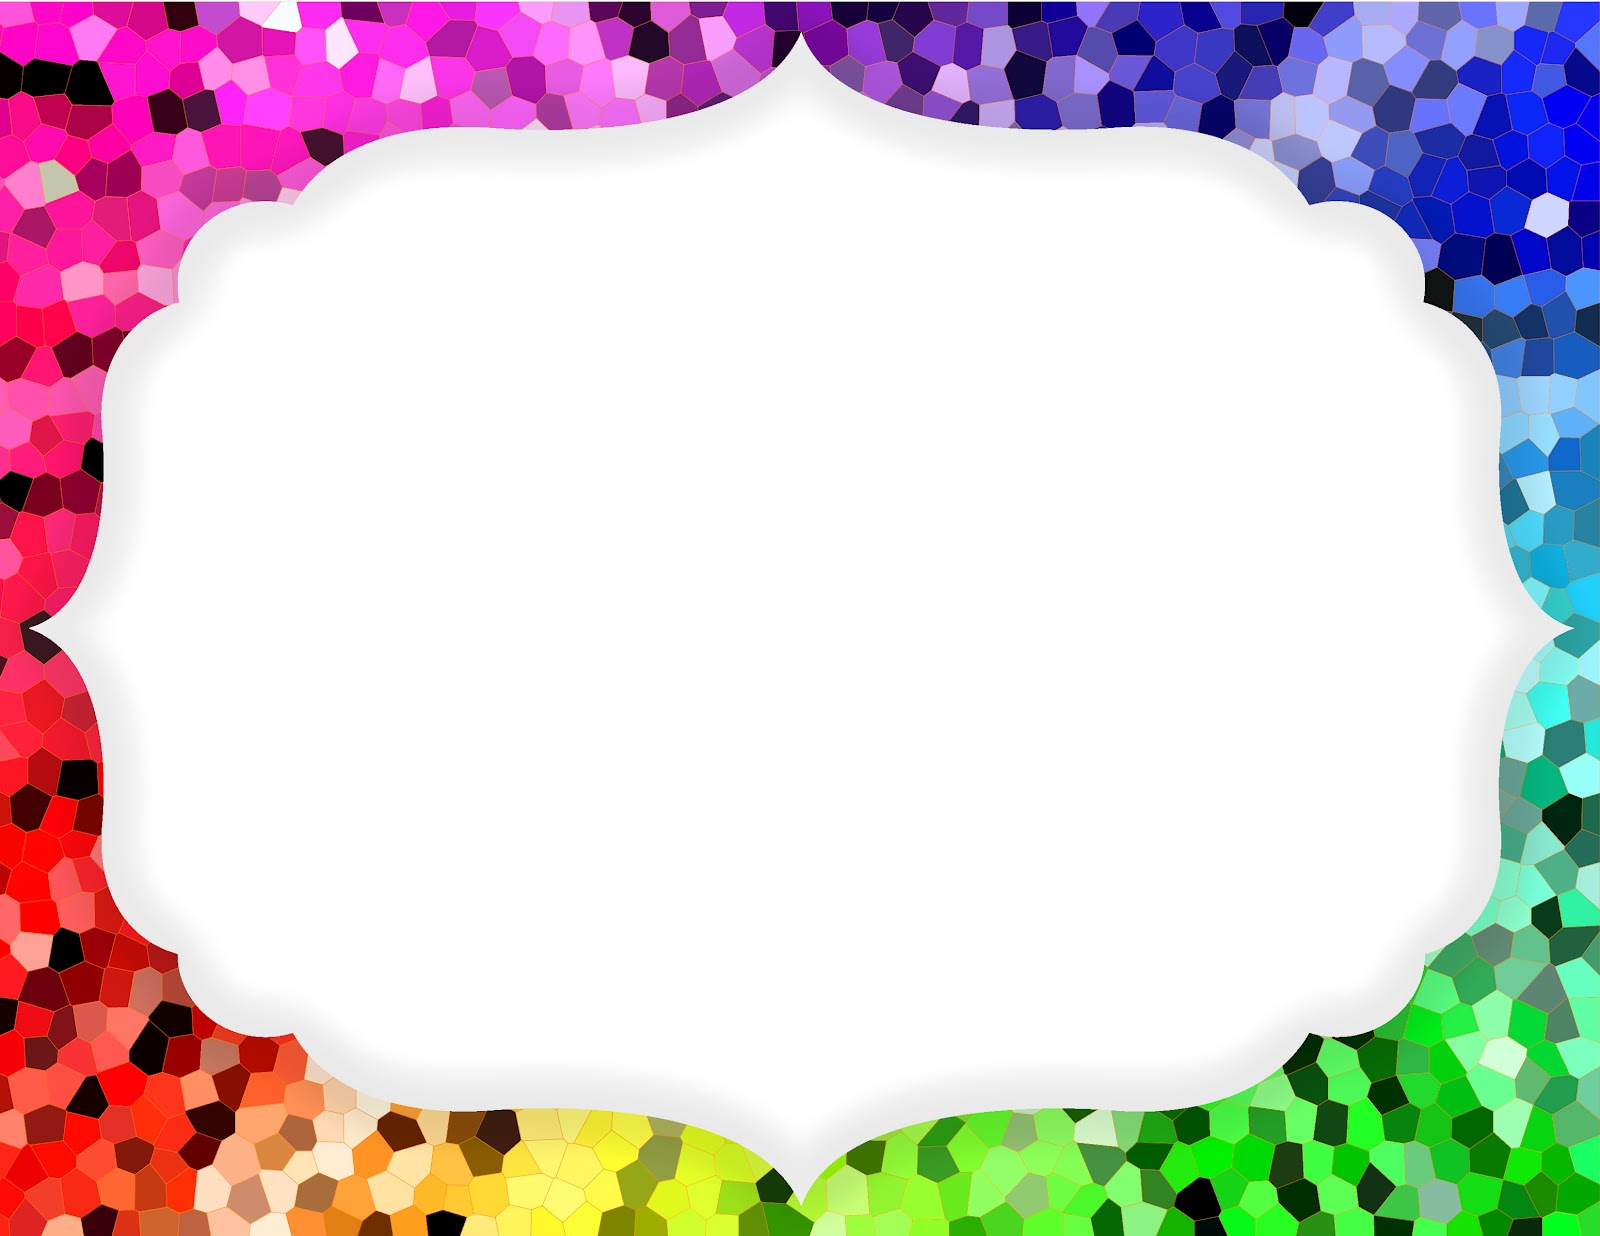 Rainbow Frame Wallpapers High Quality | Download Free